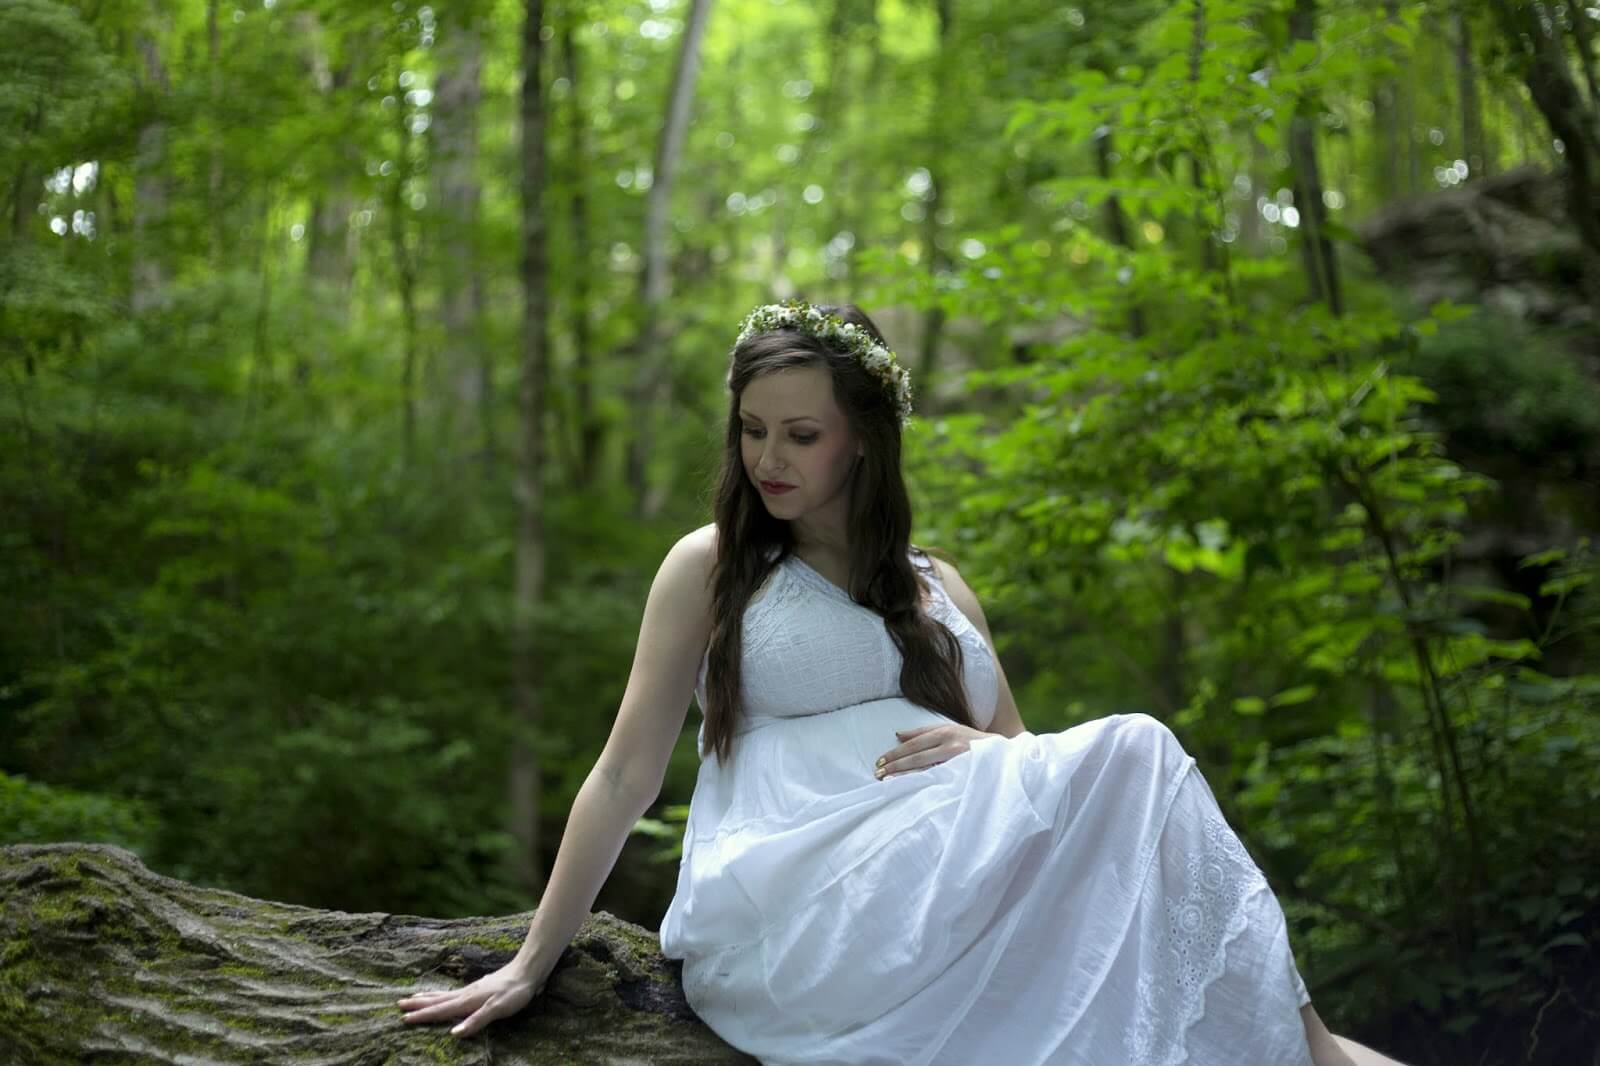 pregnant girl in white dress sitting on fallen tree